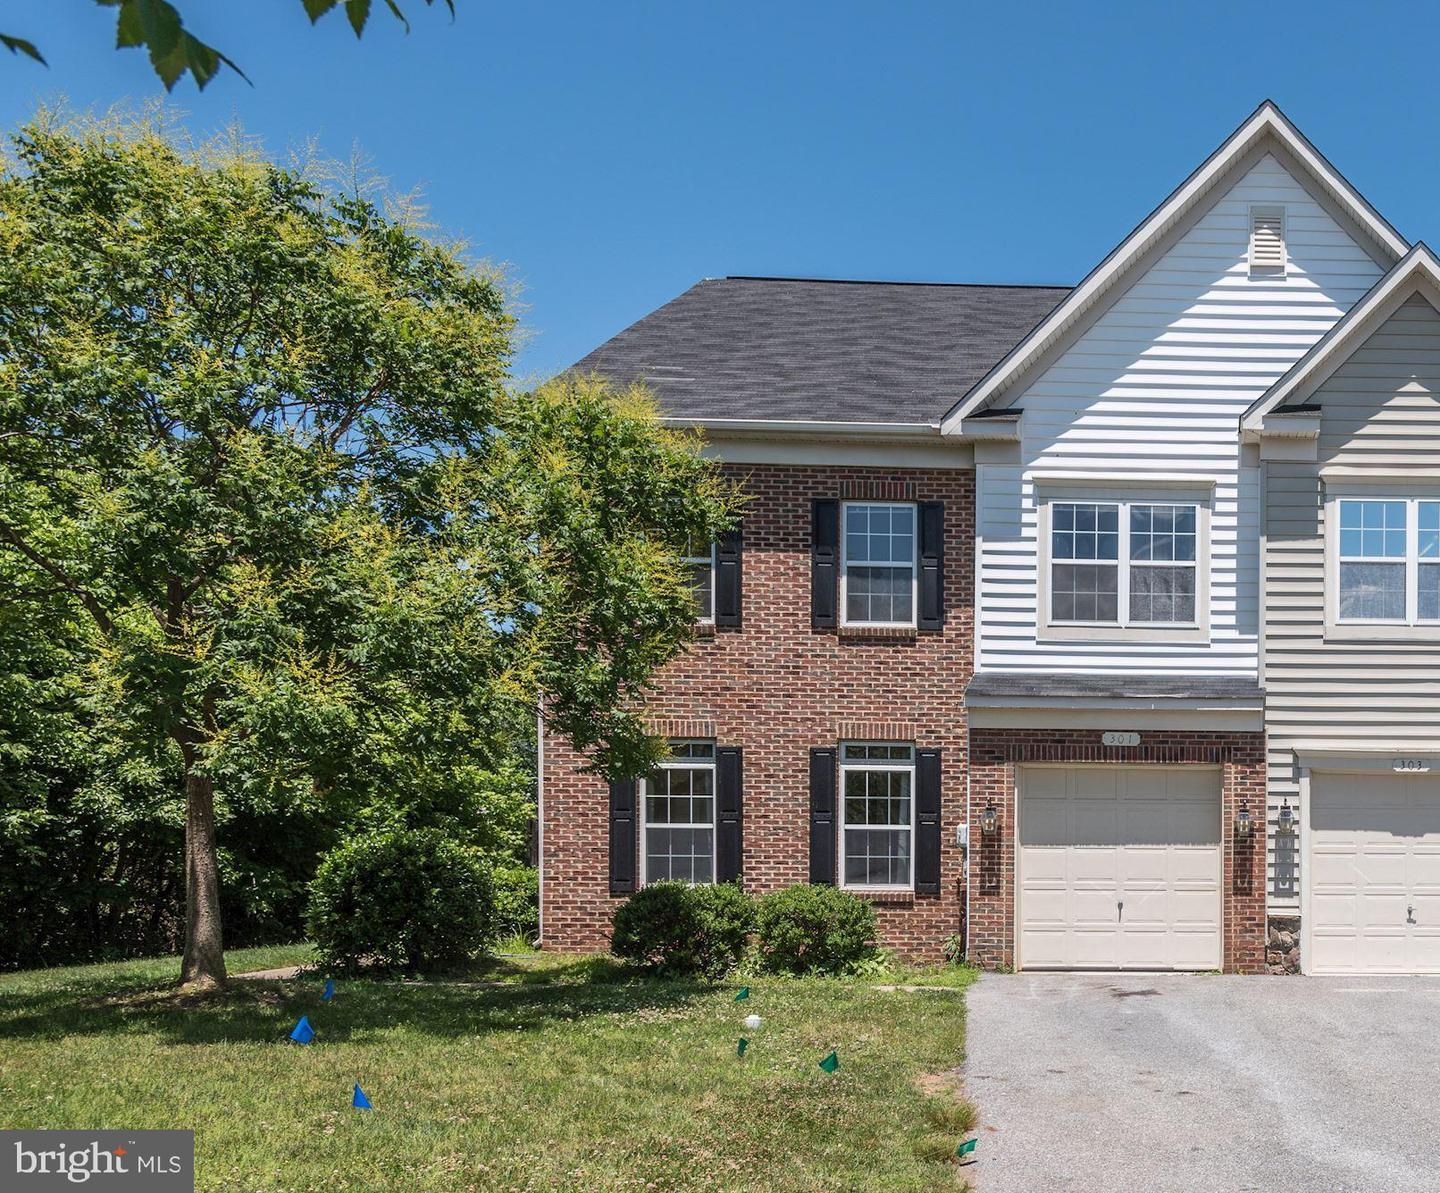 Single Family for Sale at 301 Berwick Ln Stephens City, Virginia 22655 United States